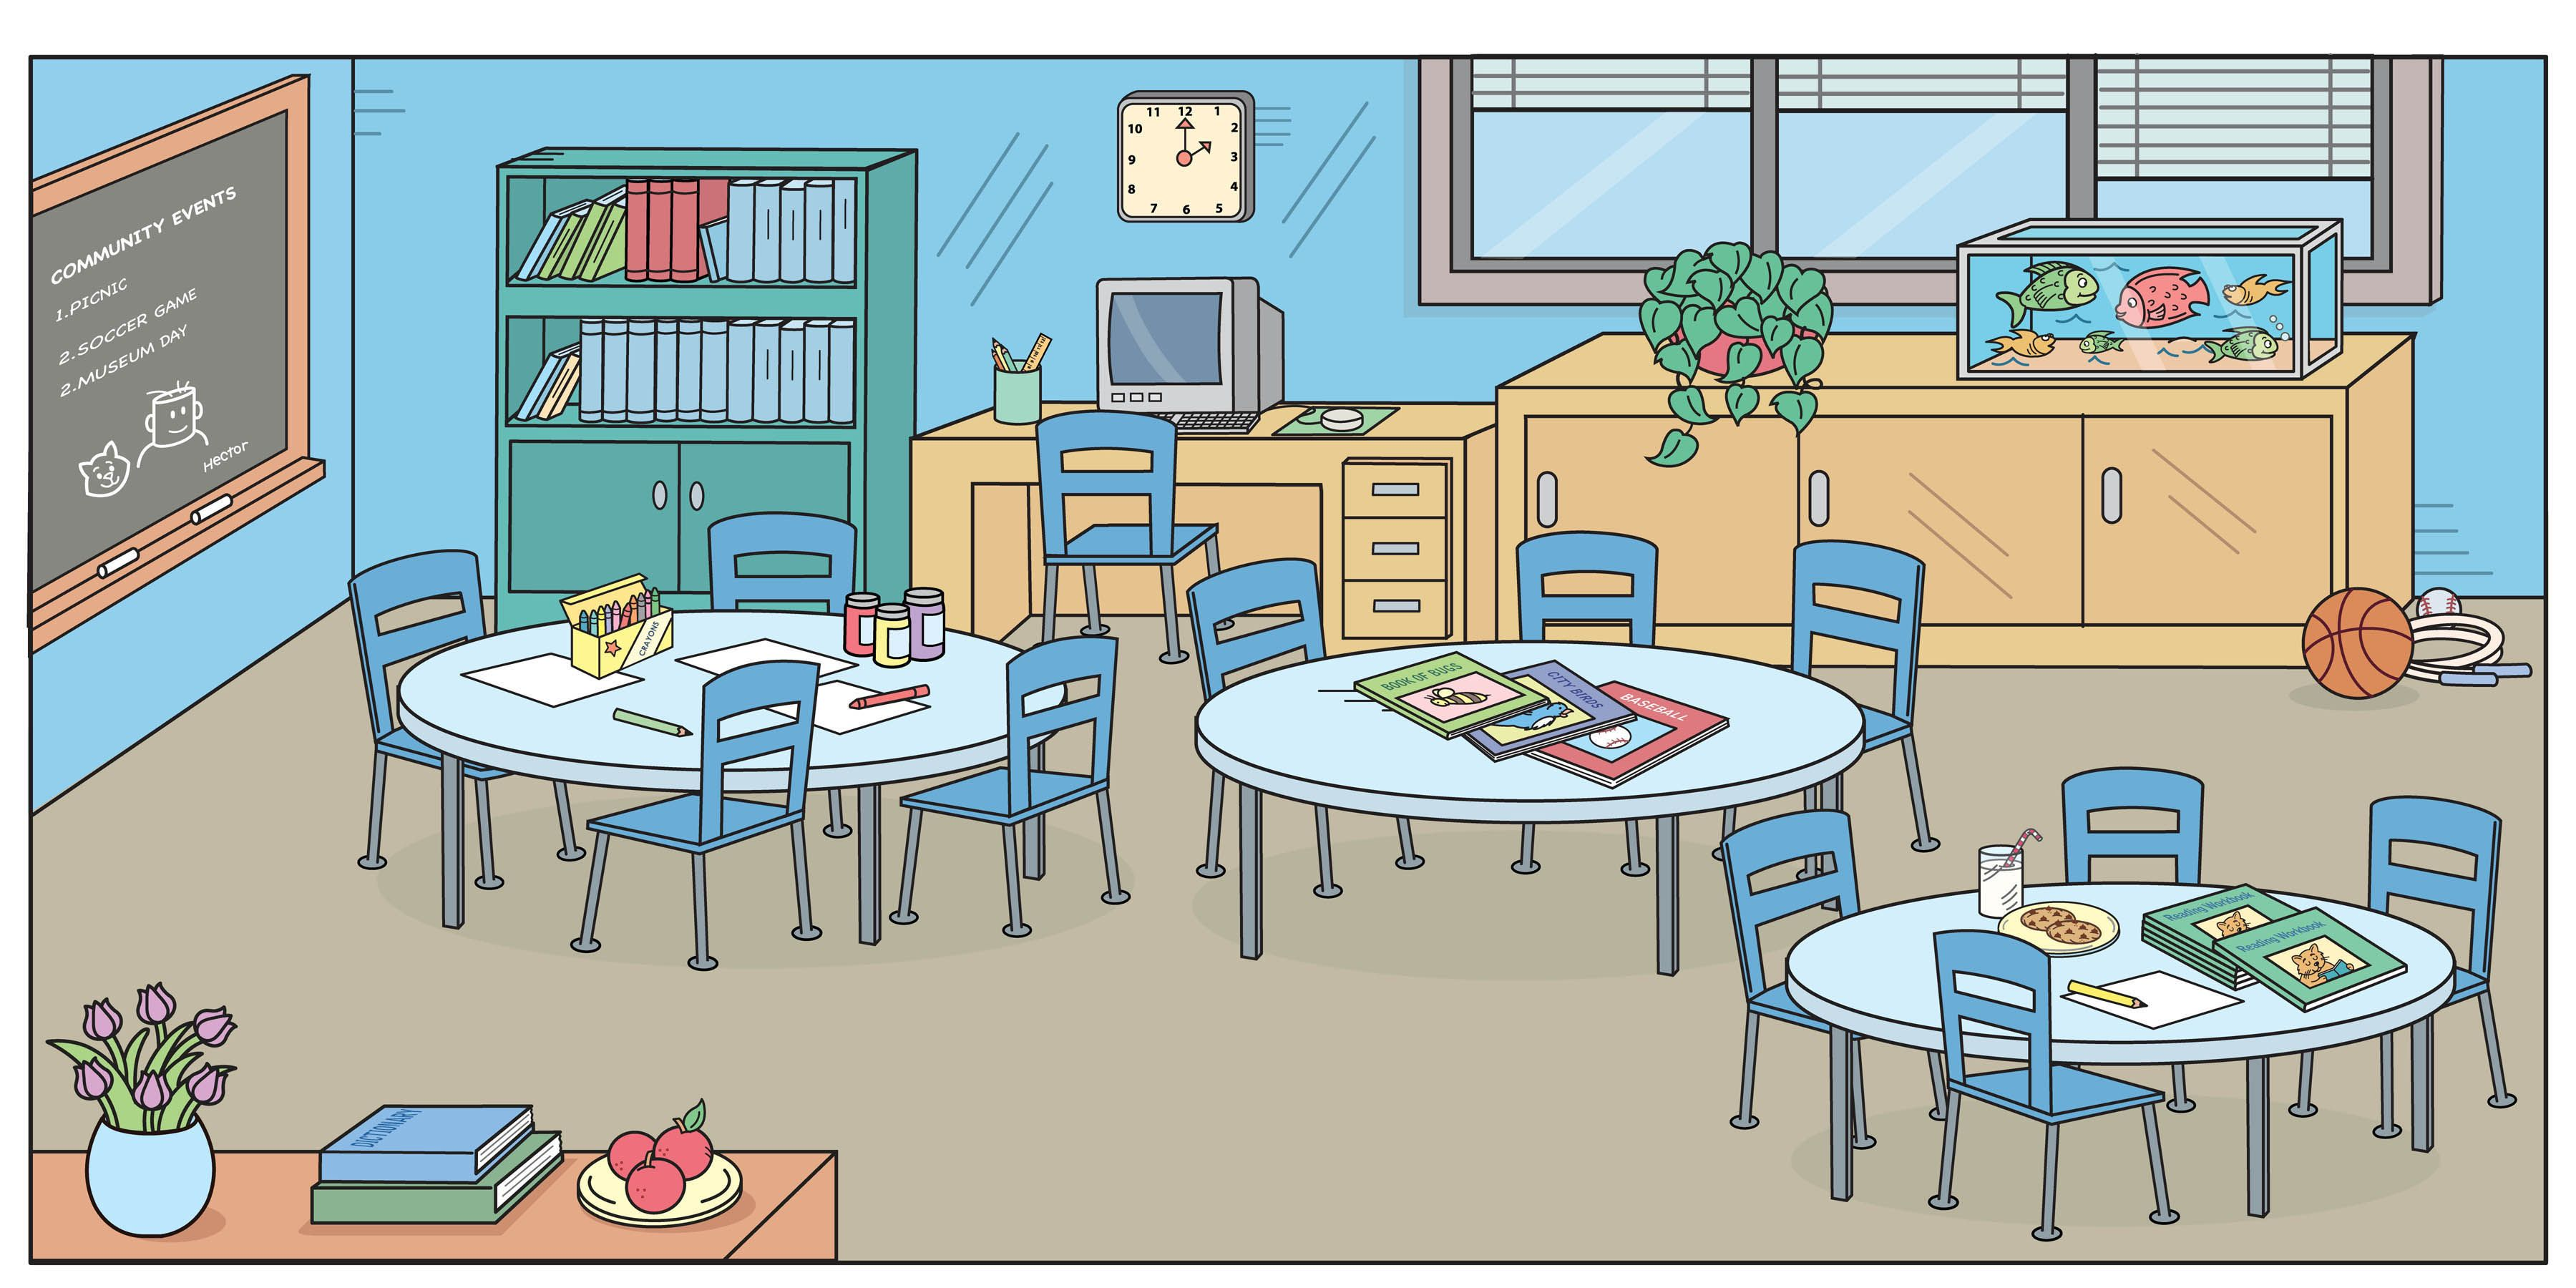 classroom     Good Pictures   Classroom clipart, Classroom ... image free